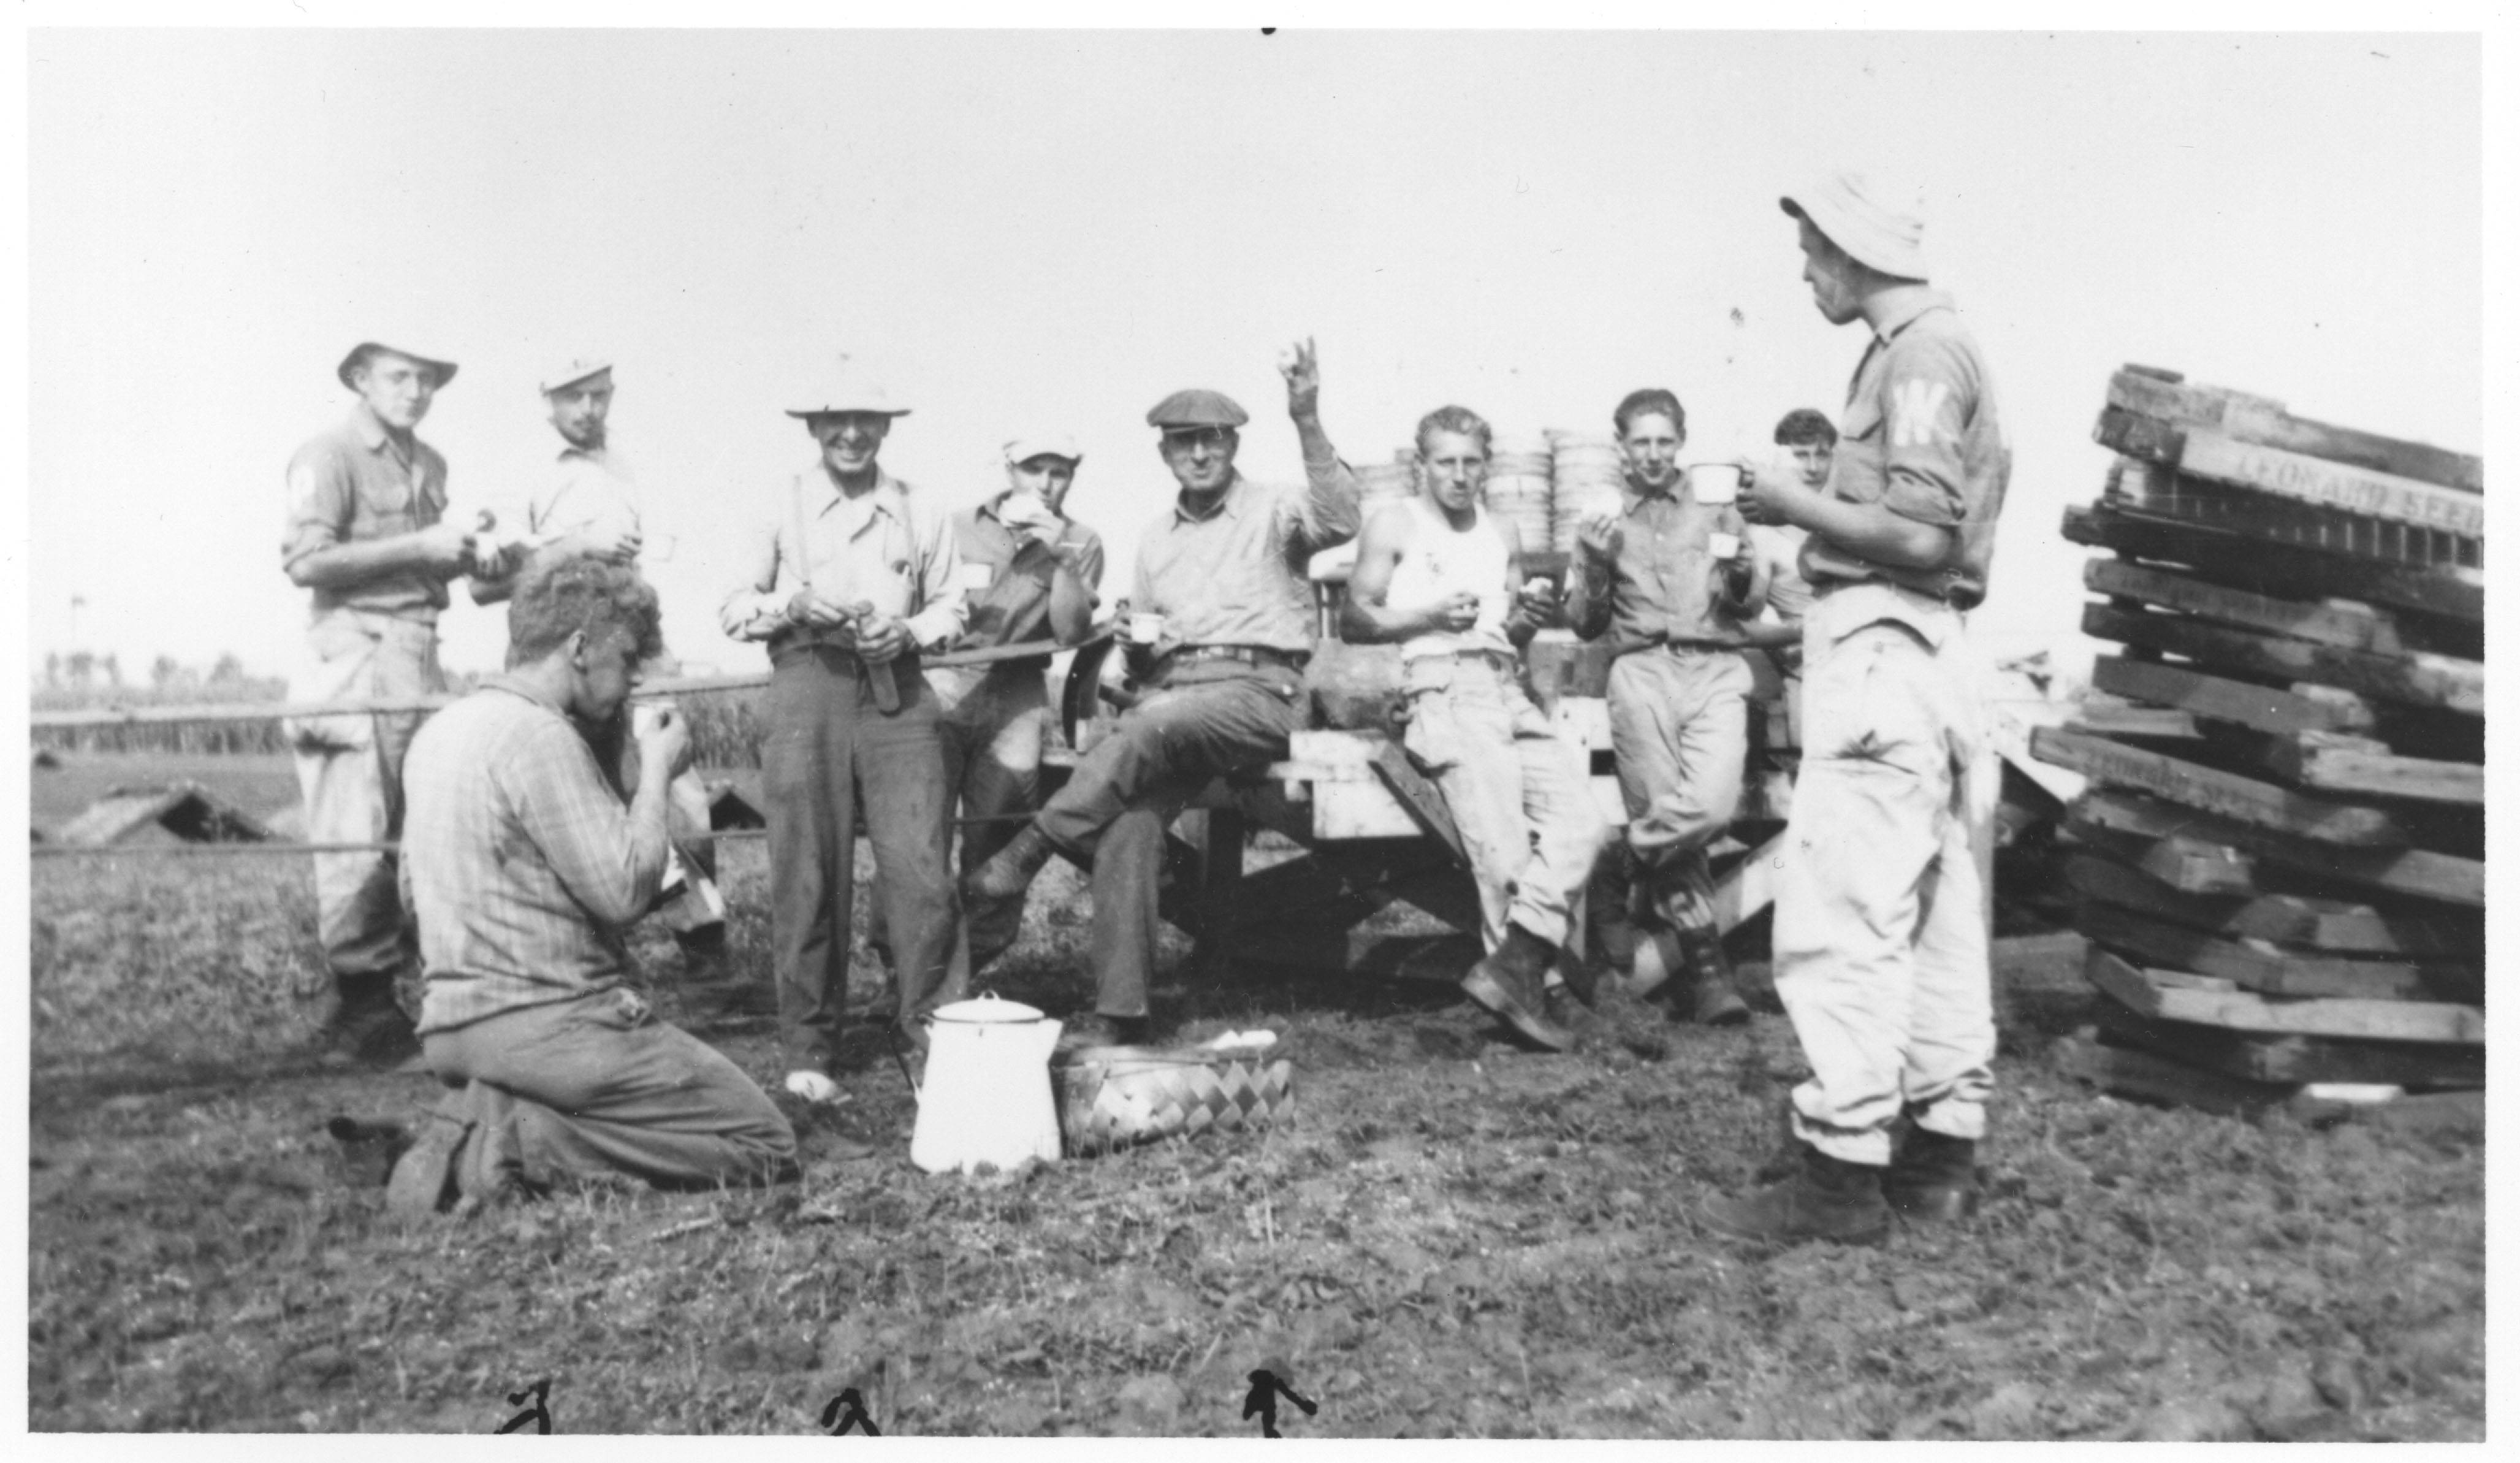 These German POWS lived at Camp Pine, in Des Plaines, during World War II. They are shown eating lunch at the Mahler Farm where they worked. Also pictured are Fred Mahler, August Sell and Russell Mahler.